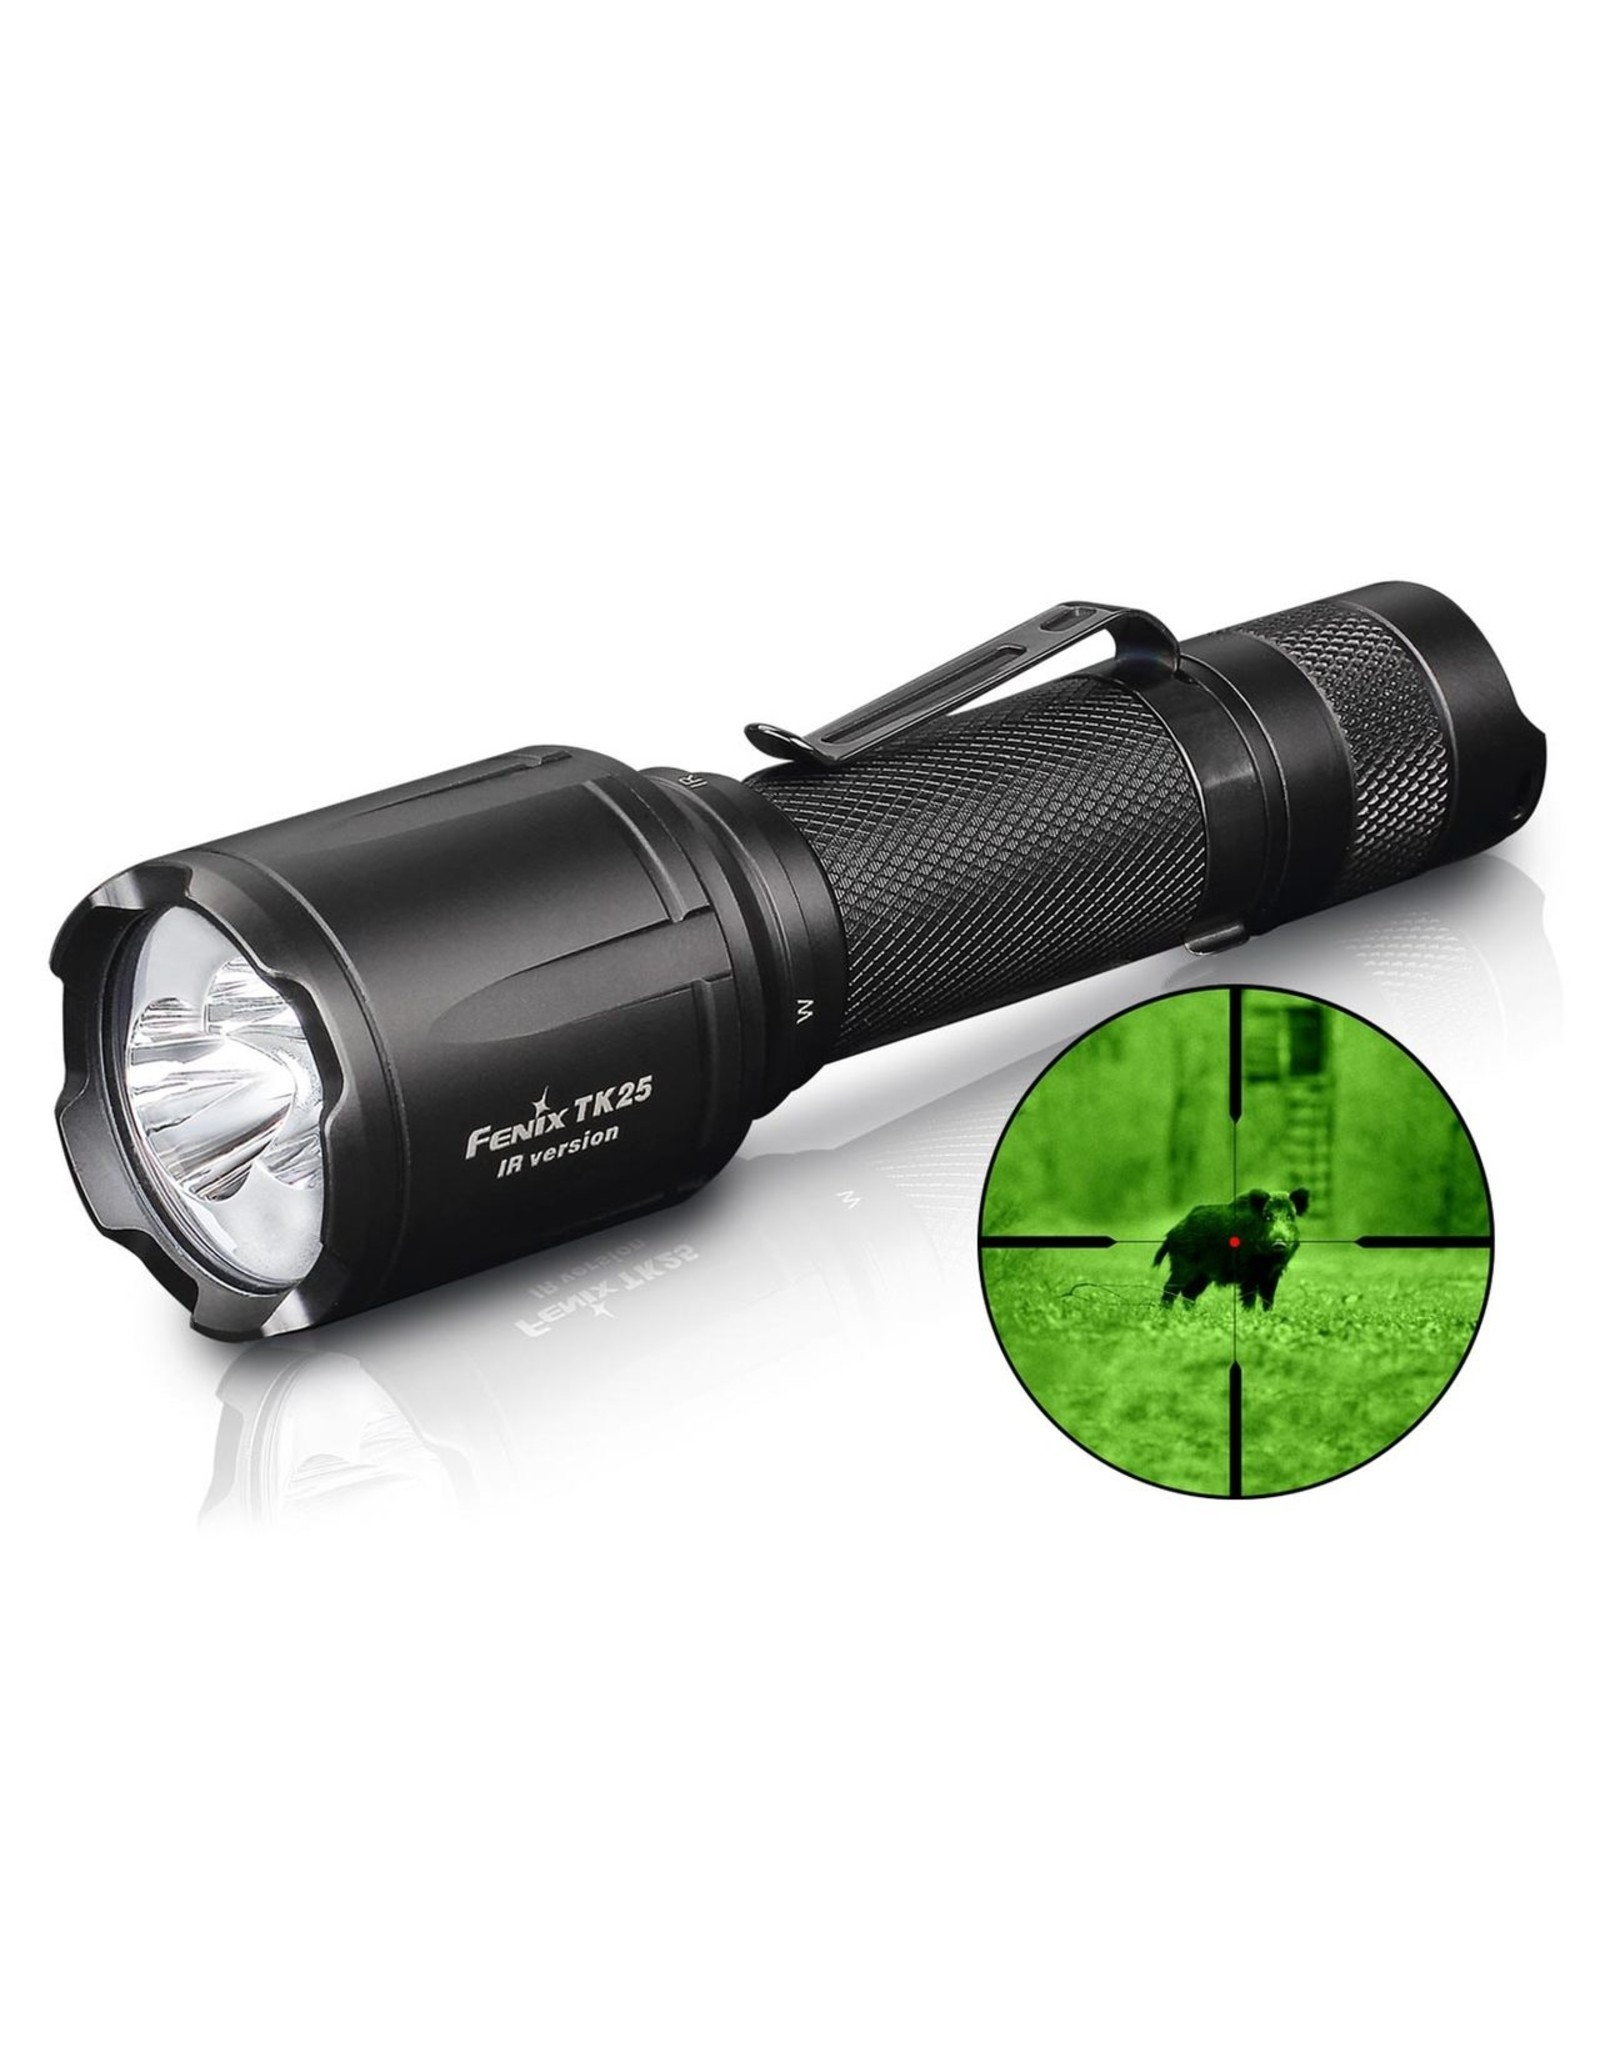 FENIX LIGHT FENIX TK25 IR FLASHLIGHT WITH INFRARED ILLUMINATOR